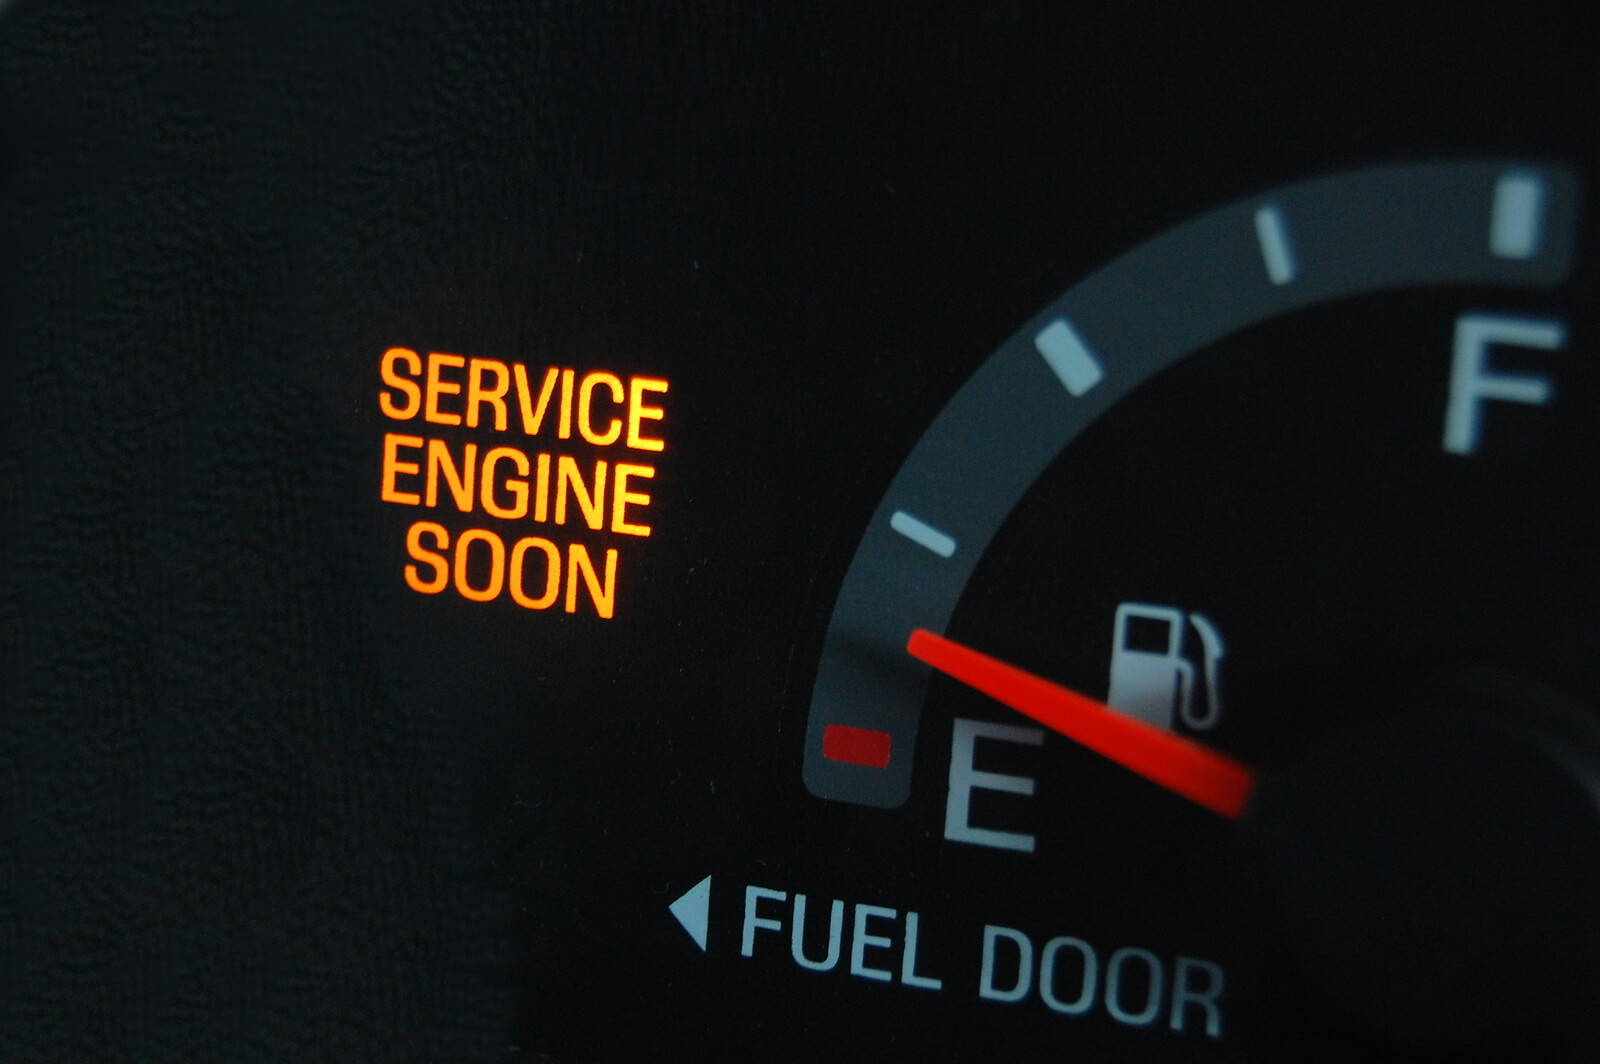 5 Reasons Why Your Car, Truck, or SUV's Check Engine Light Came On